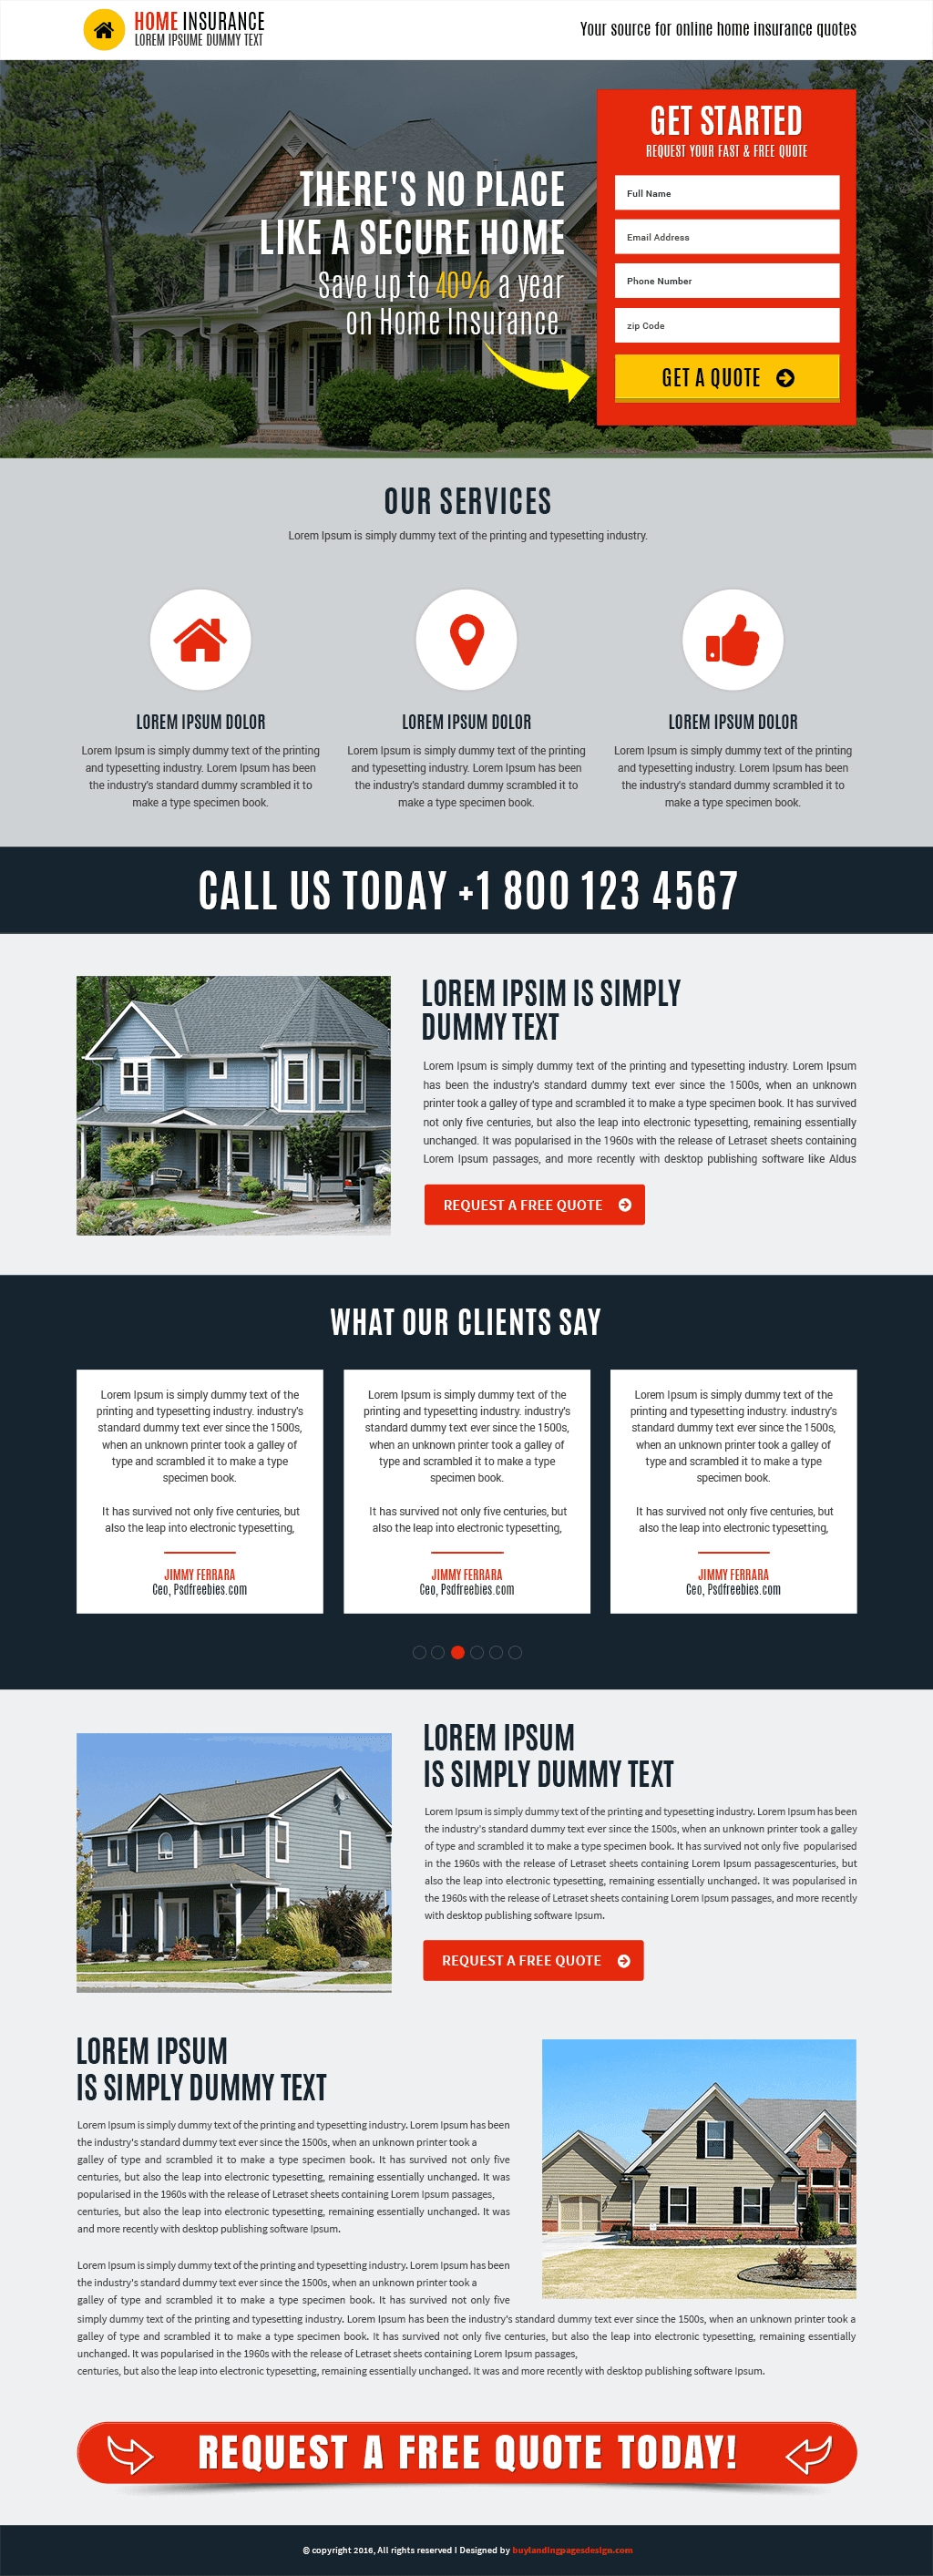 Best Responsive Home Insurance Template Buy Landing Pages Design